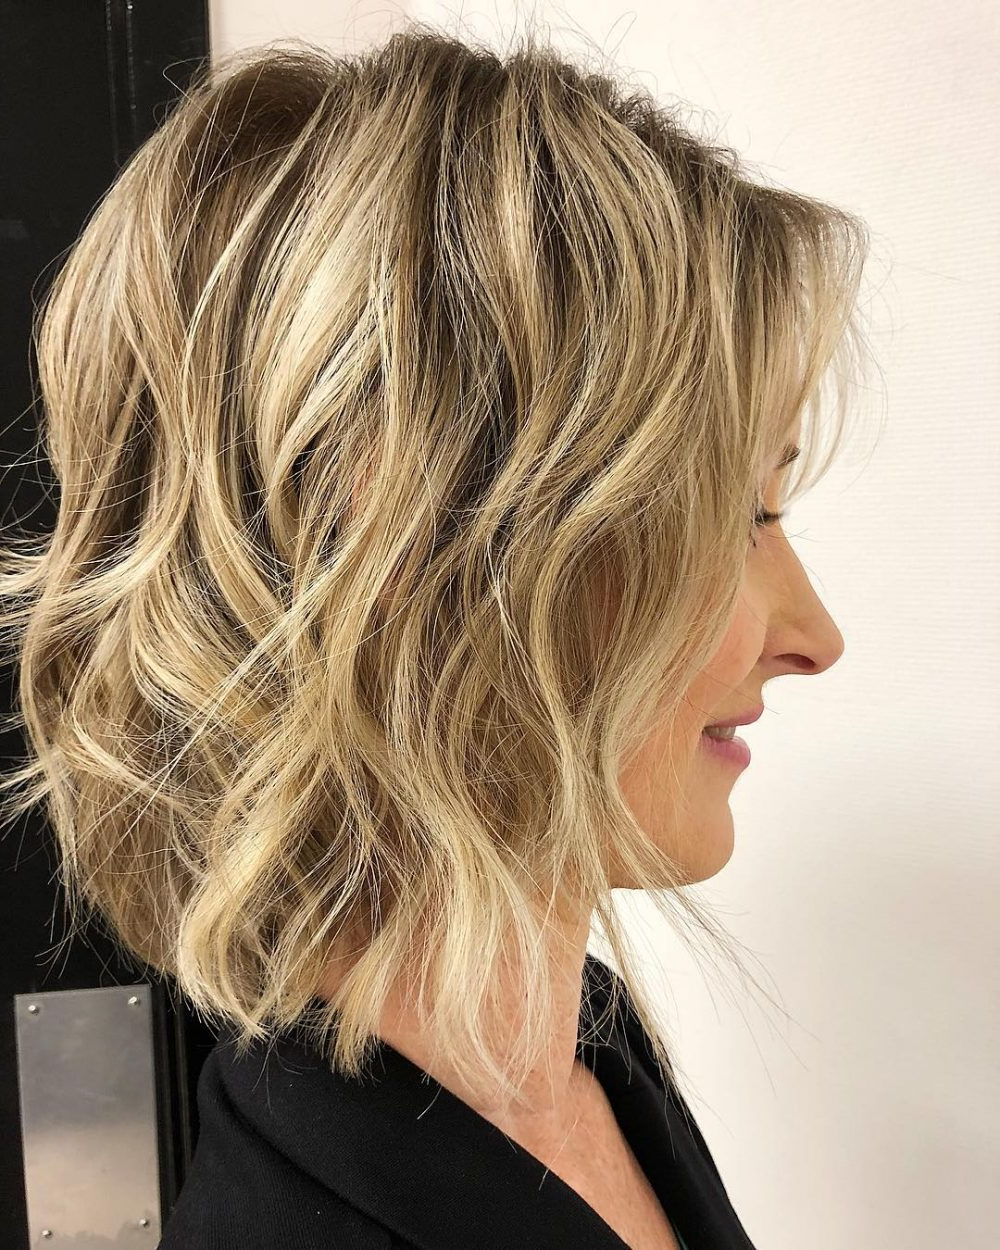 43 Perfect Short Hairstyles For Fine Hair In 2018 Regarding Layered Bob Haircuts For Fine Hair (Gallery 17 of 20)